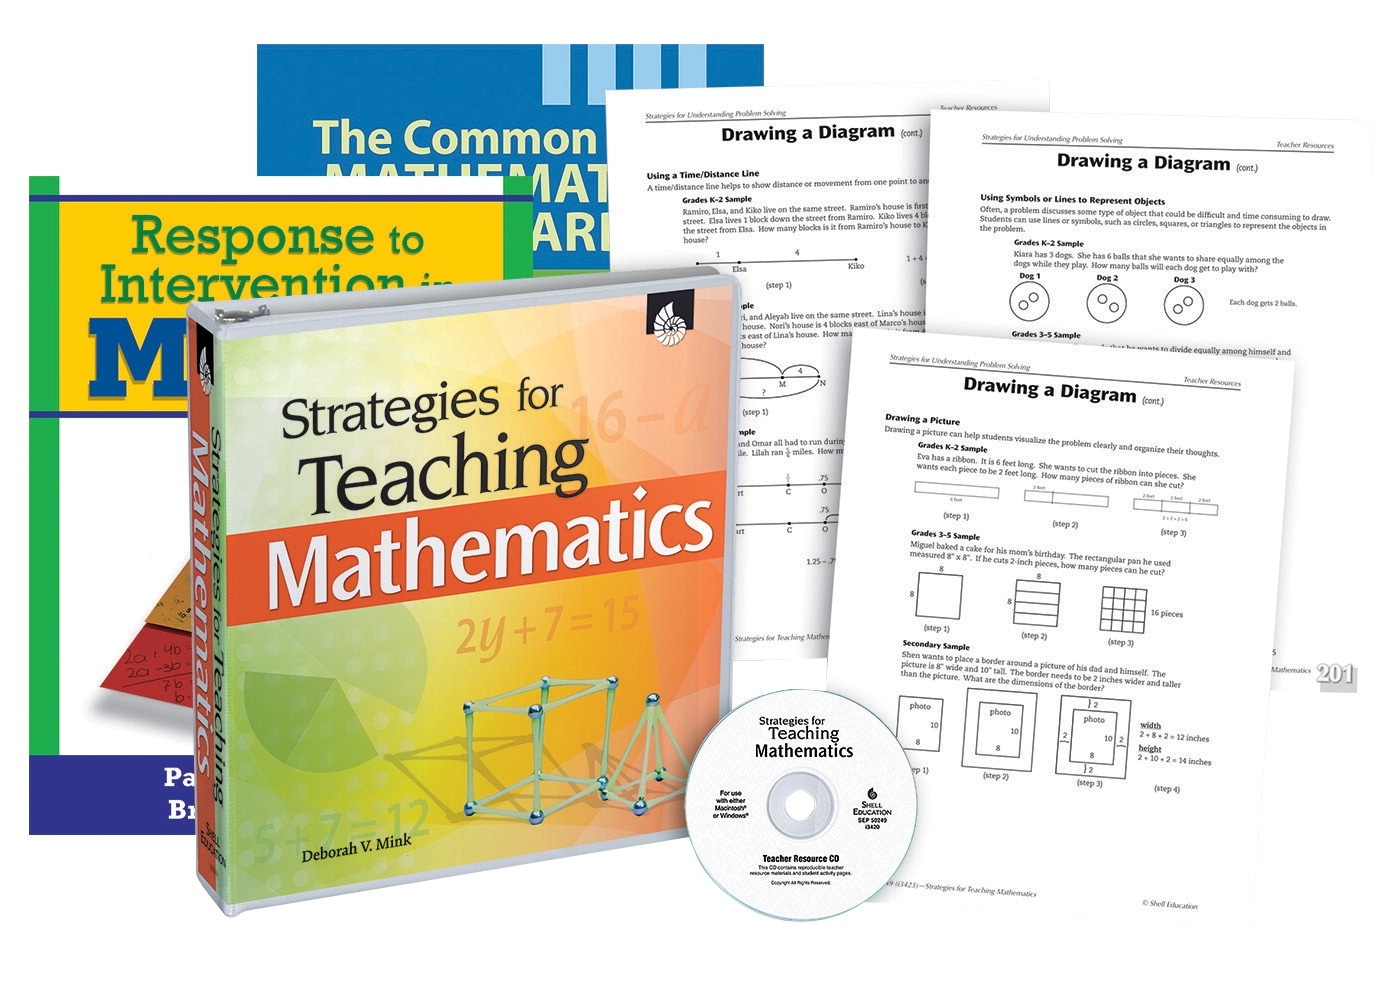 School Specialty Common Core Differentiation Resources For Math Pd Resource Kit - 1458351 - Instructional Materials Resources Science Activities Equipment Physical Science Projects Books 1458351